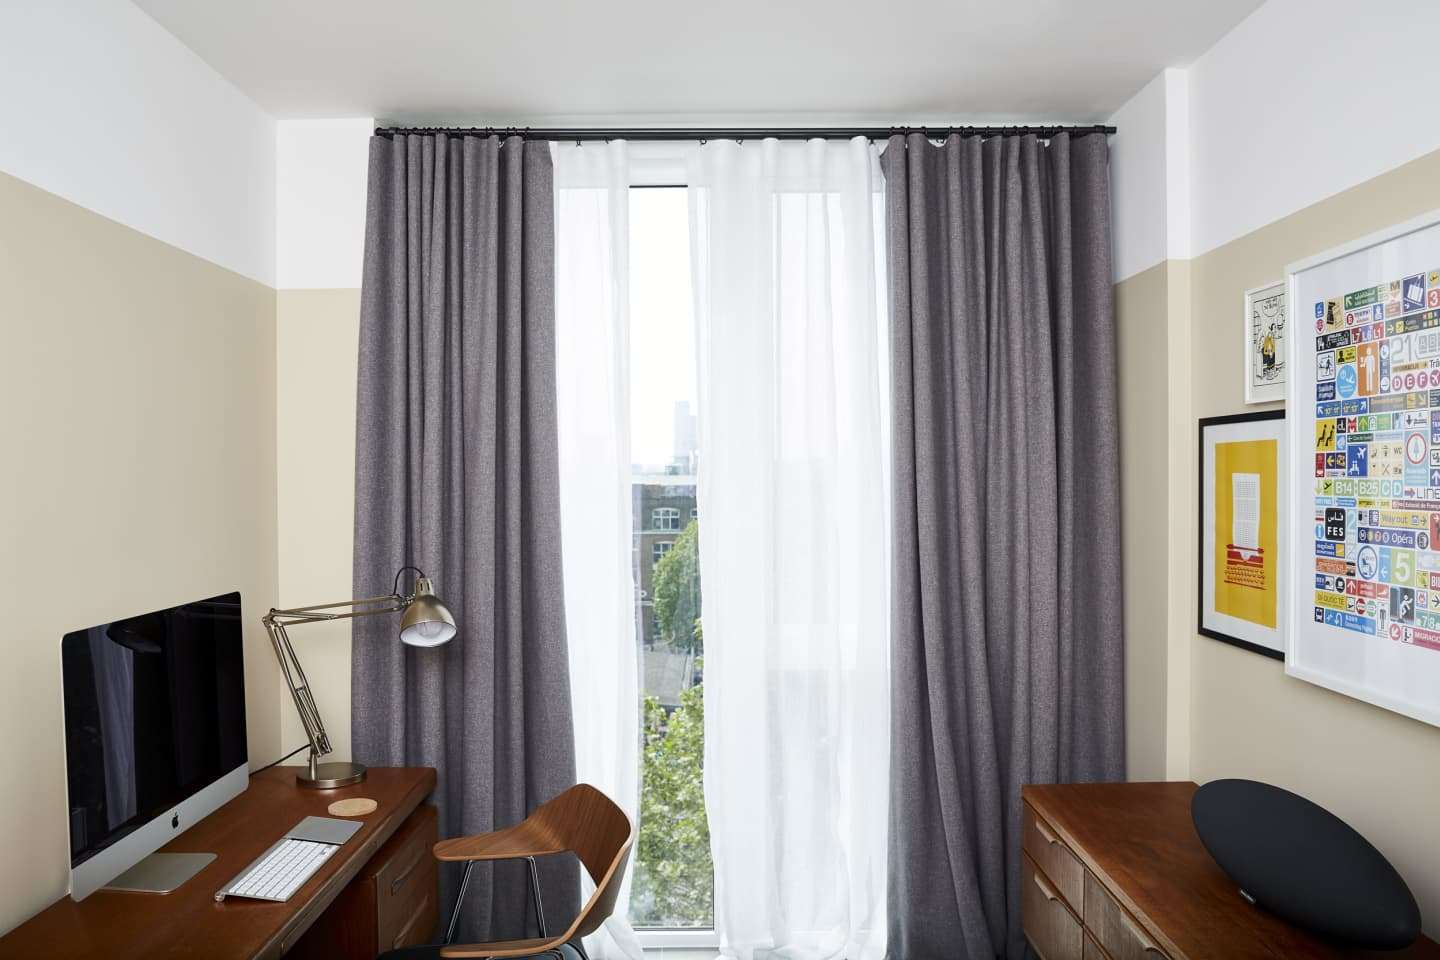 study room with grey/silver curtains